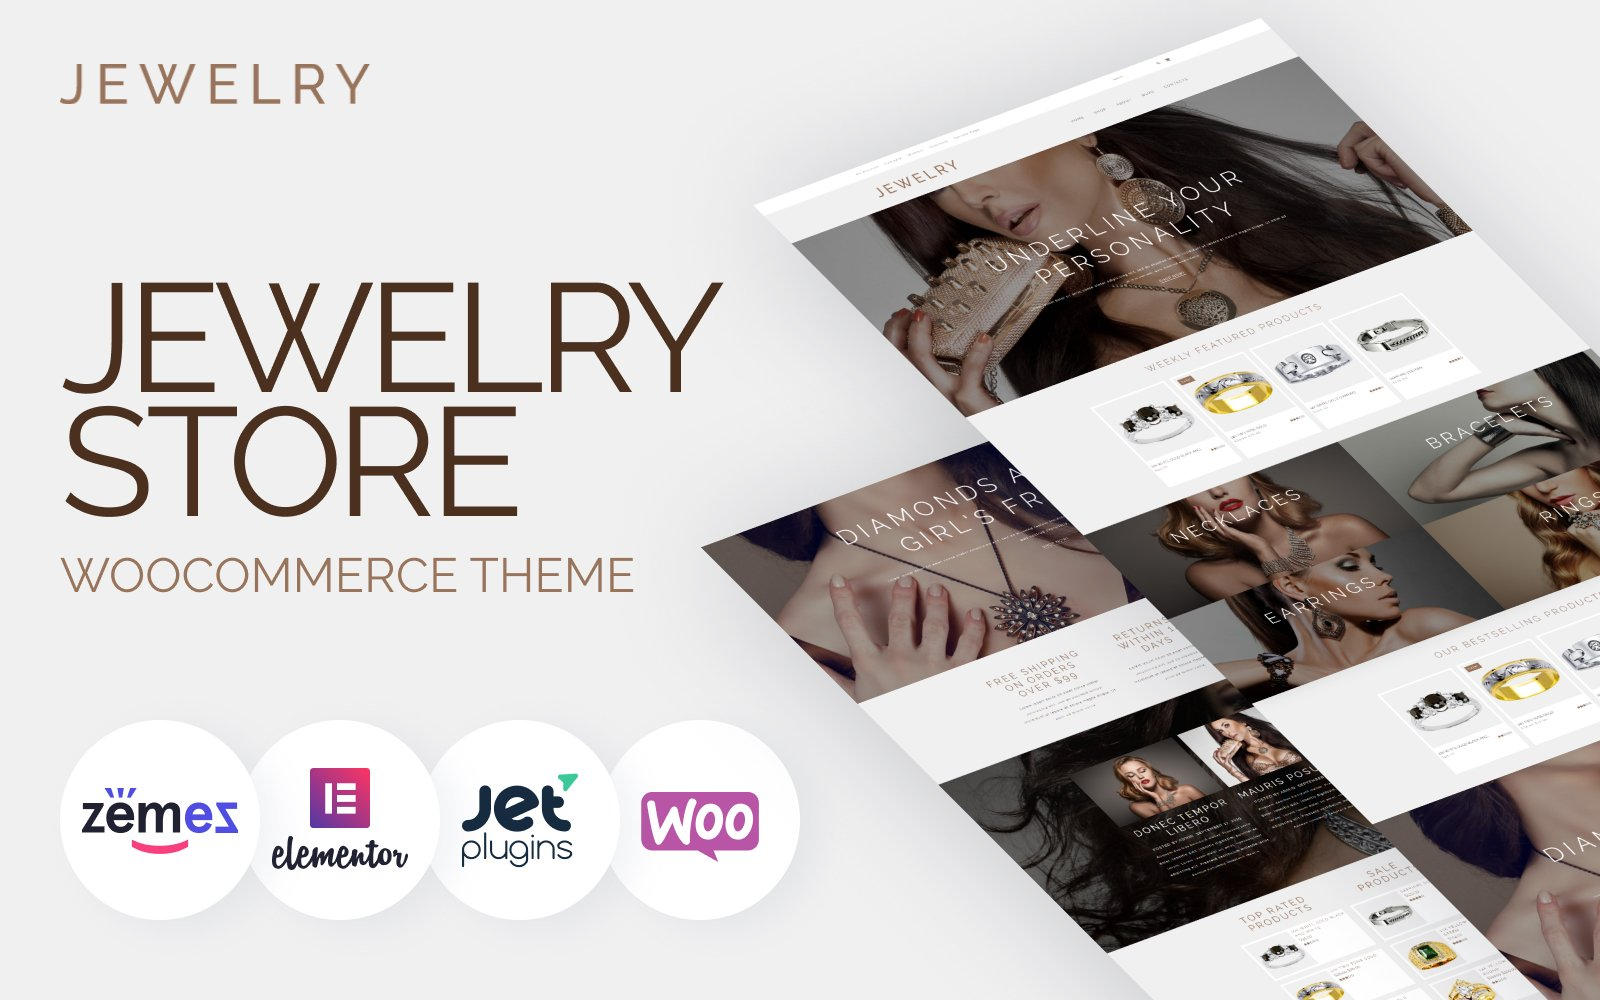 The Jewelry Store Company WooCommerce Design 53421, one of the best WooCommerce themes of its kind (wedding, most popular), also known as jewelry store company WooCommerce template, brand WooCommerce template, collections online shop WooCommerce template, jewels WooCommerce template, gold WooCommerce template, silver WooCommerce template, golden ring WooCommerce template, rings WooCommerce template, watch WooCommerce template, watches store WooCommerce template, souvenir WooCommerce template, present and related with jewelry store company, brand, collections online shop, jewels, gold, silver, golden ring, rings, watch, watches store, souvenir, present, etc.